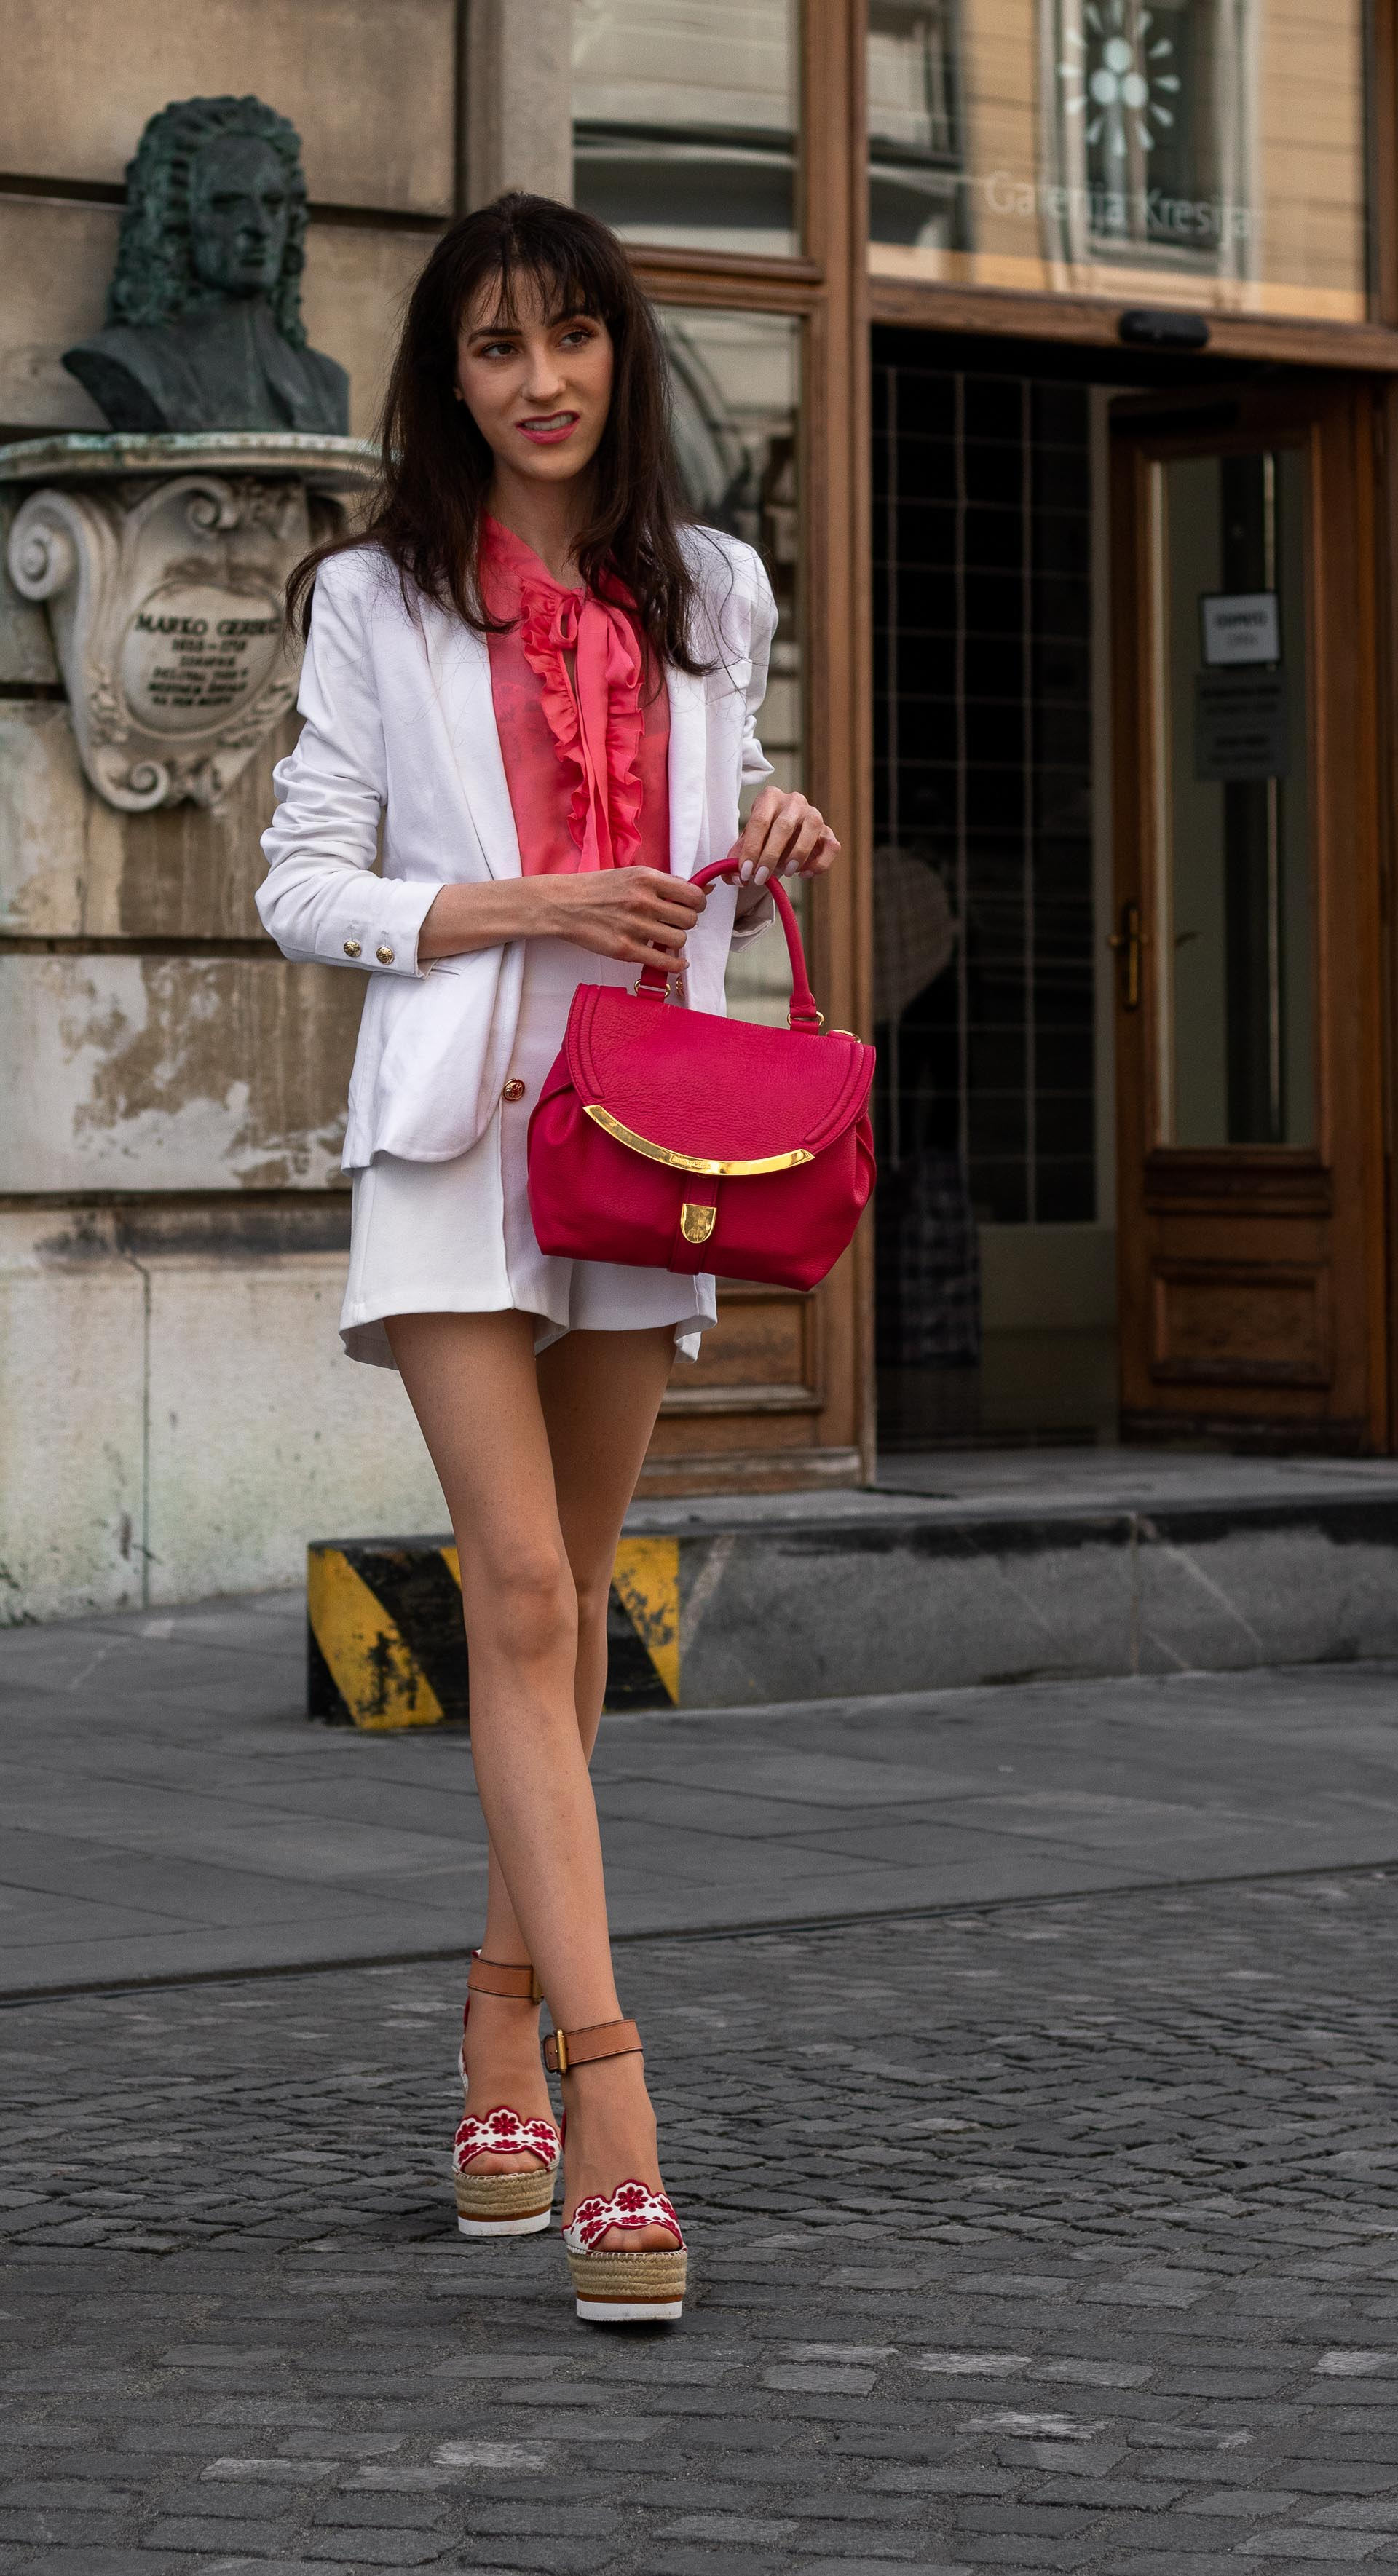 Fashion Blogger Veronika Lipar of Brunette from Wall Street dressed in See by Chloé wedge espadrilles white shorts white blazer orange floppy tie blouse pink top handle bag in the city